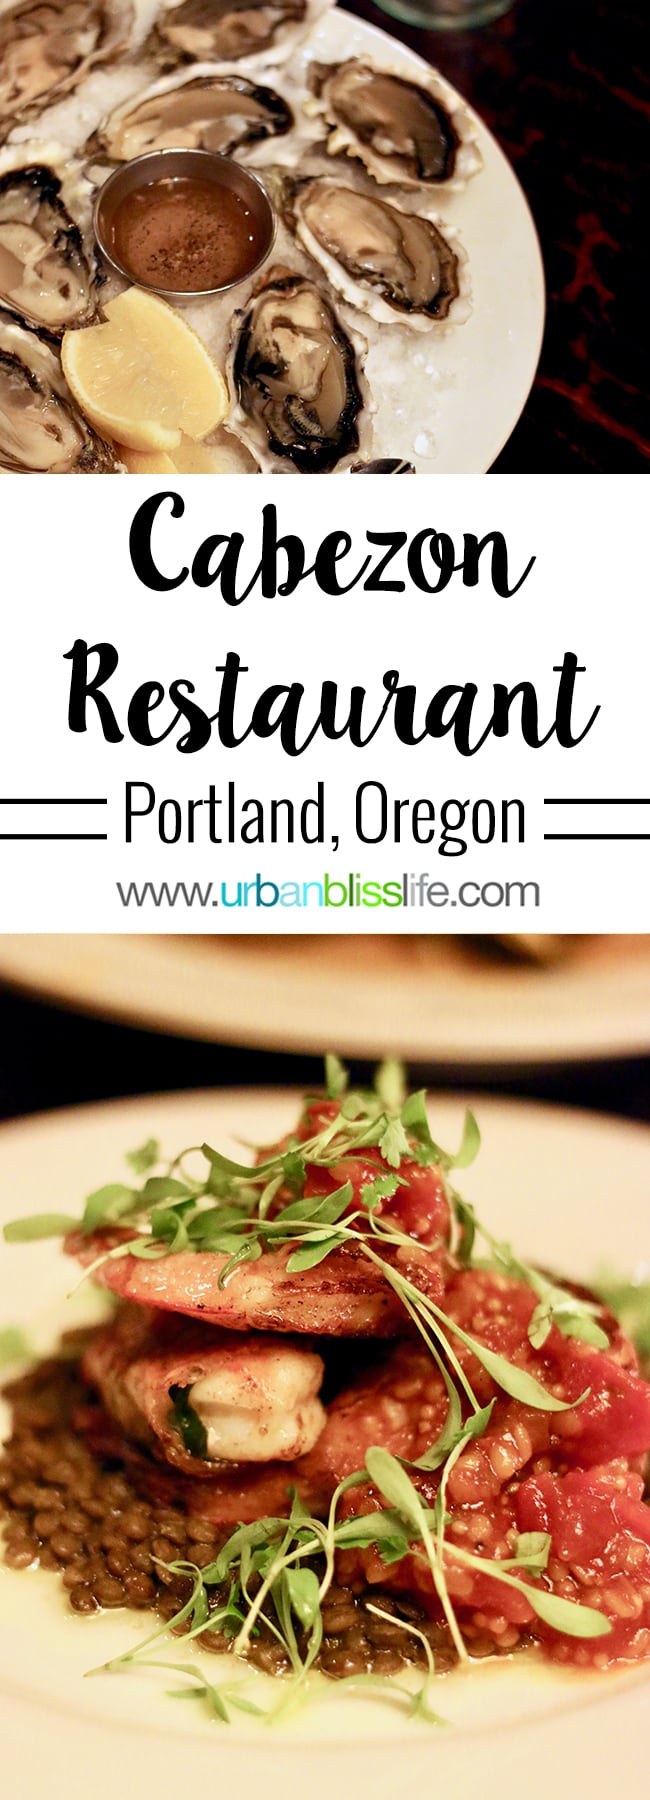 Cabezon Portland, Oregon. Full restaurant details on UrbanBlissLife.com